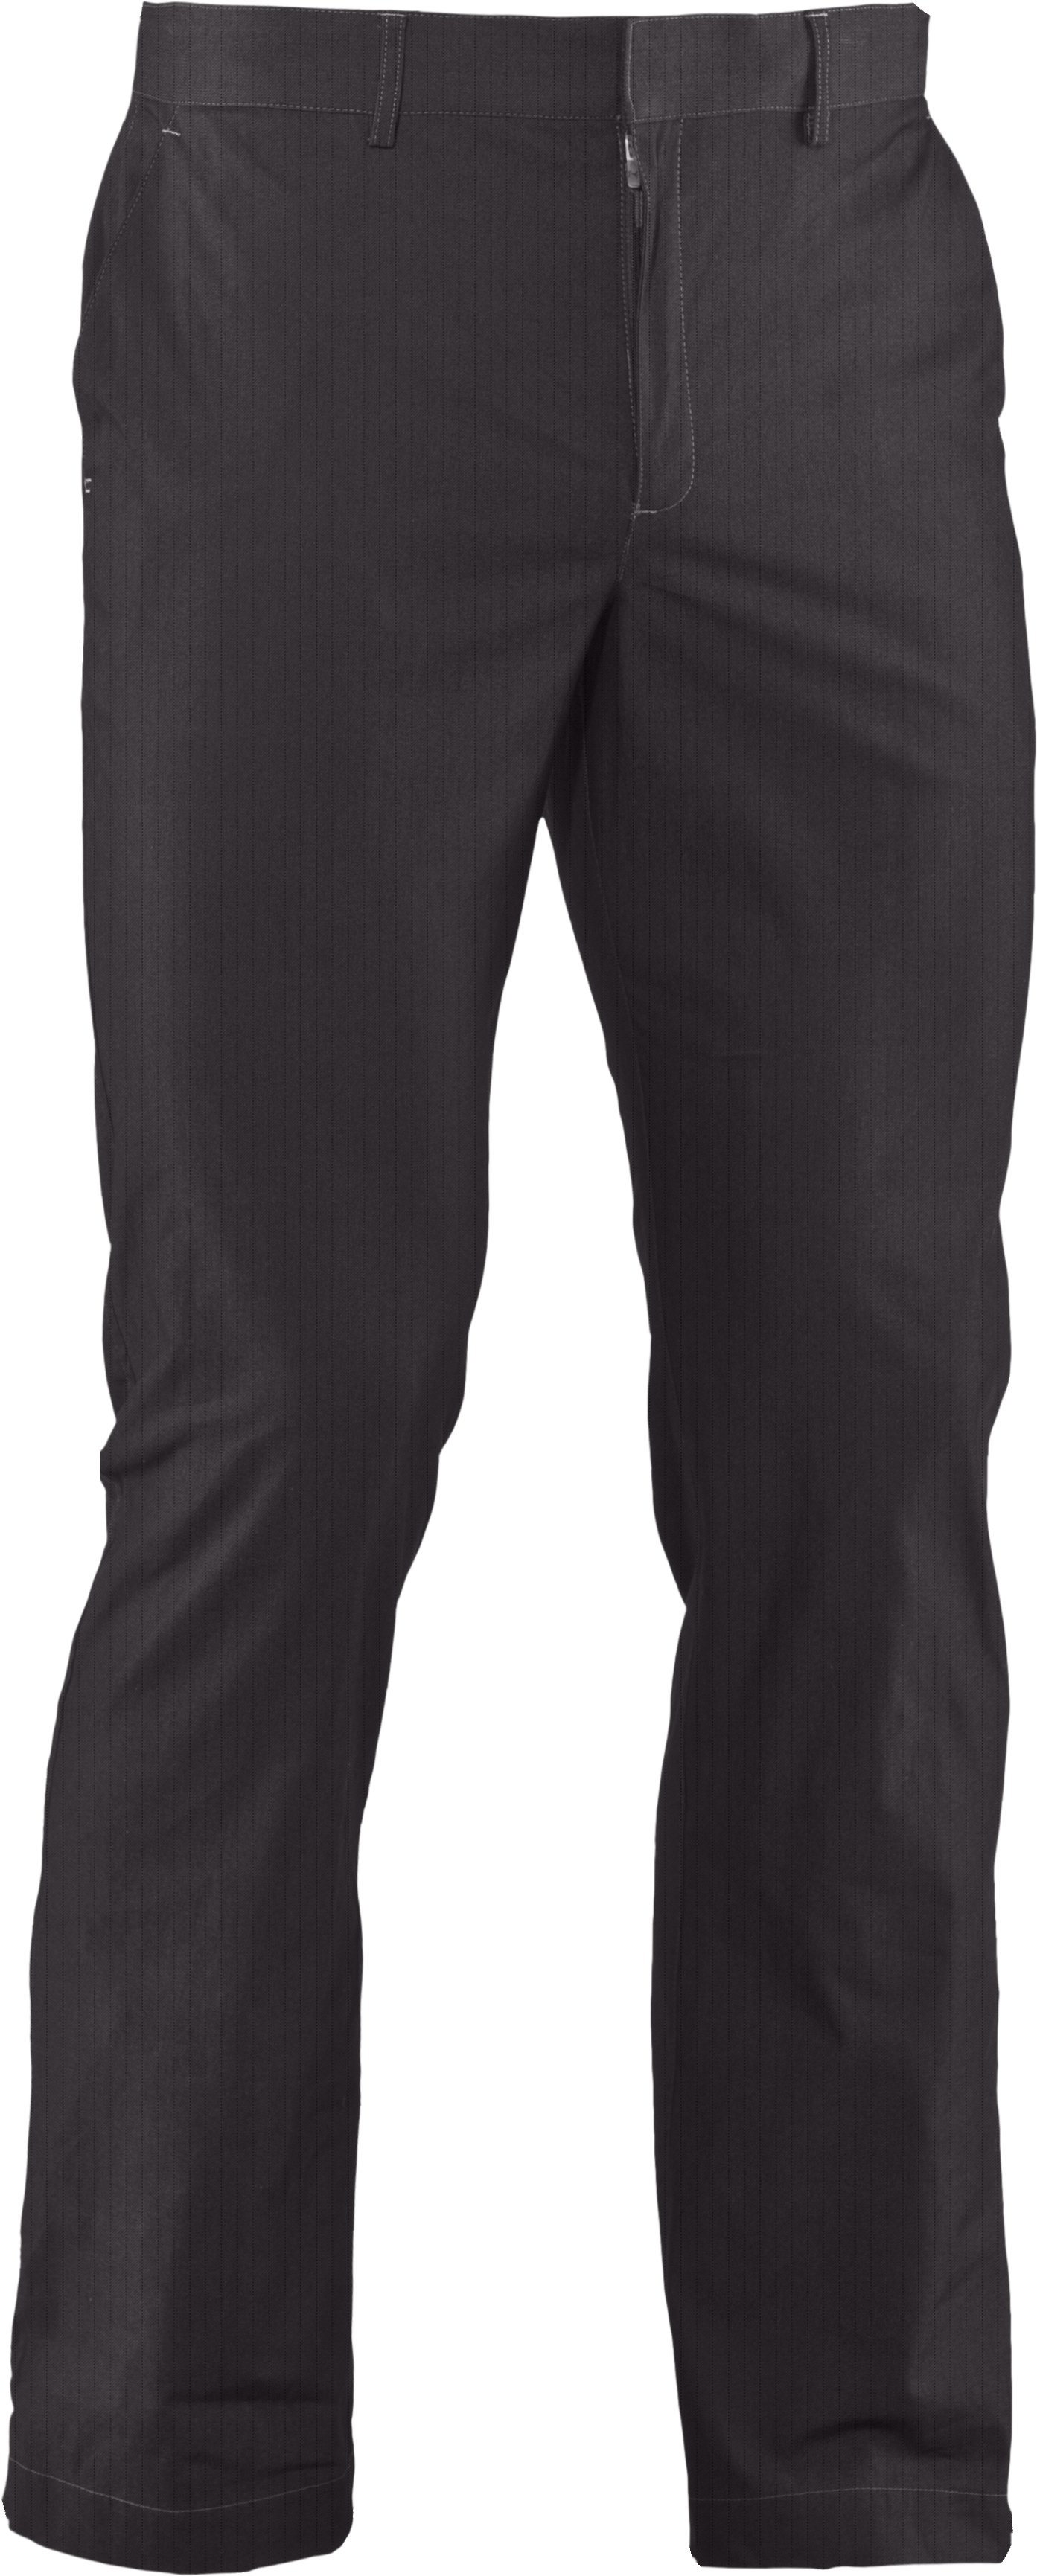 Men's AllSeasonGear® Storm Golf Pants, Charcoal